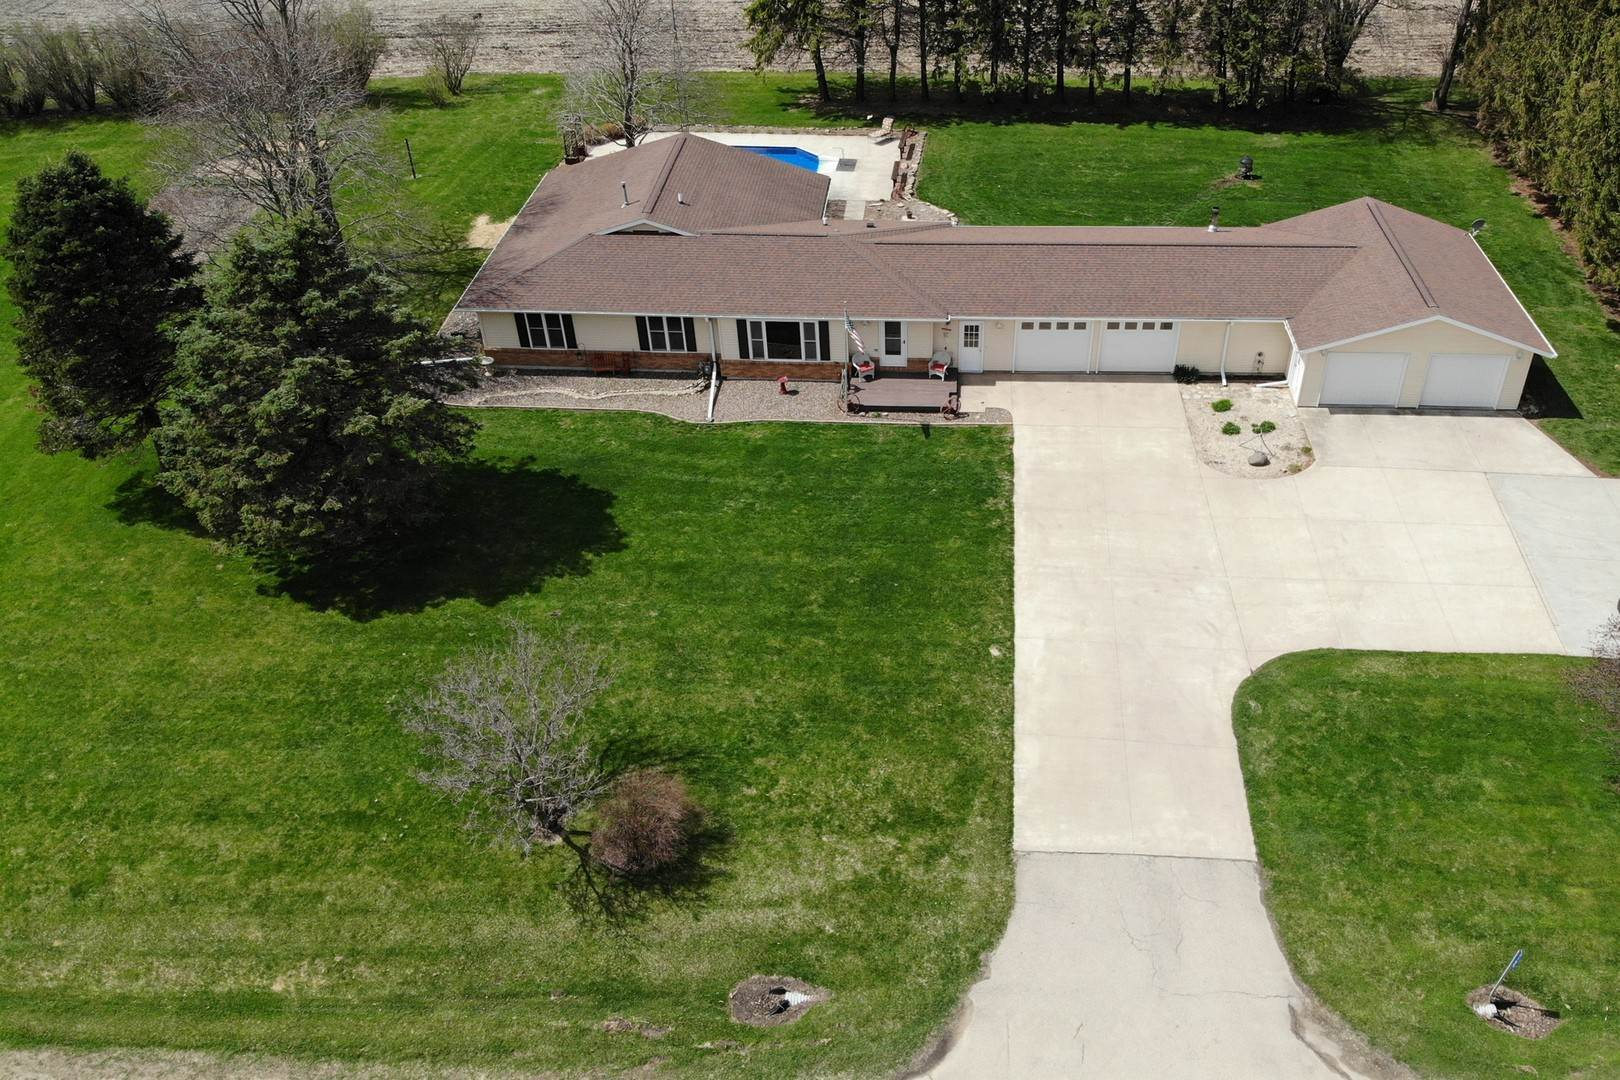 Single Family Homes for Sale at 2100 Il Route 78 N Stockton, Illinois 61085 United States